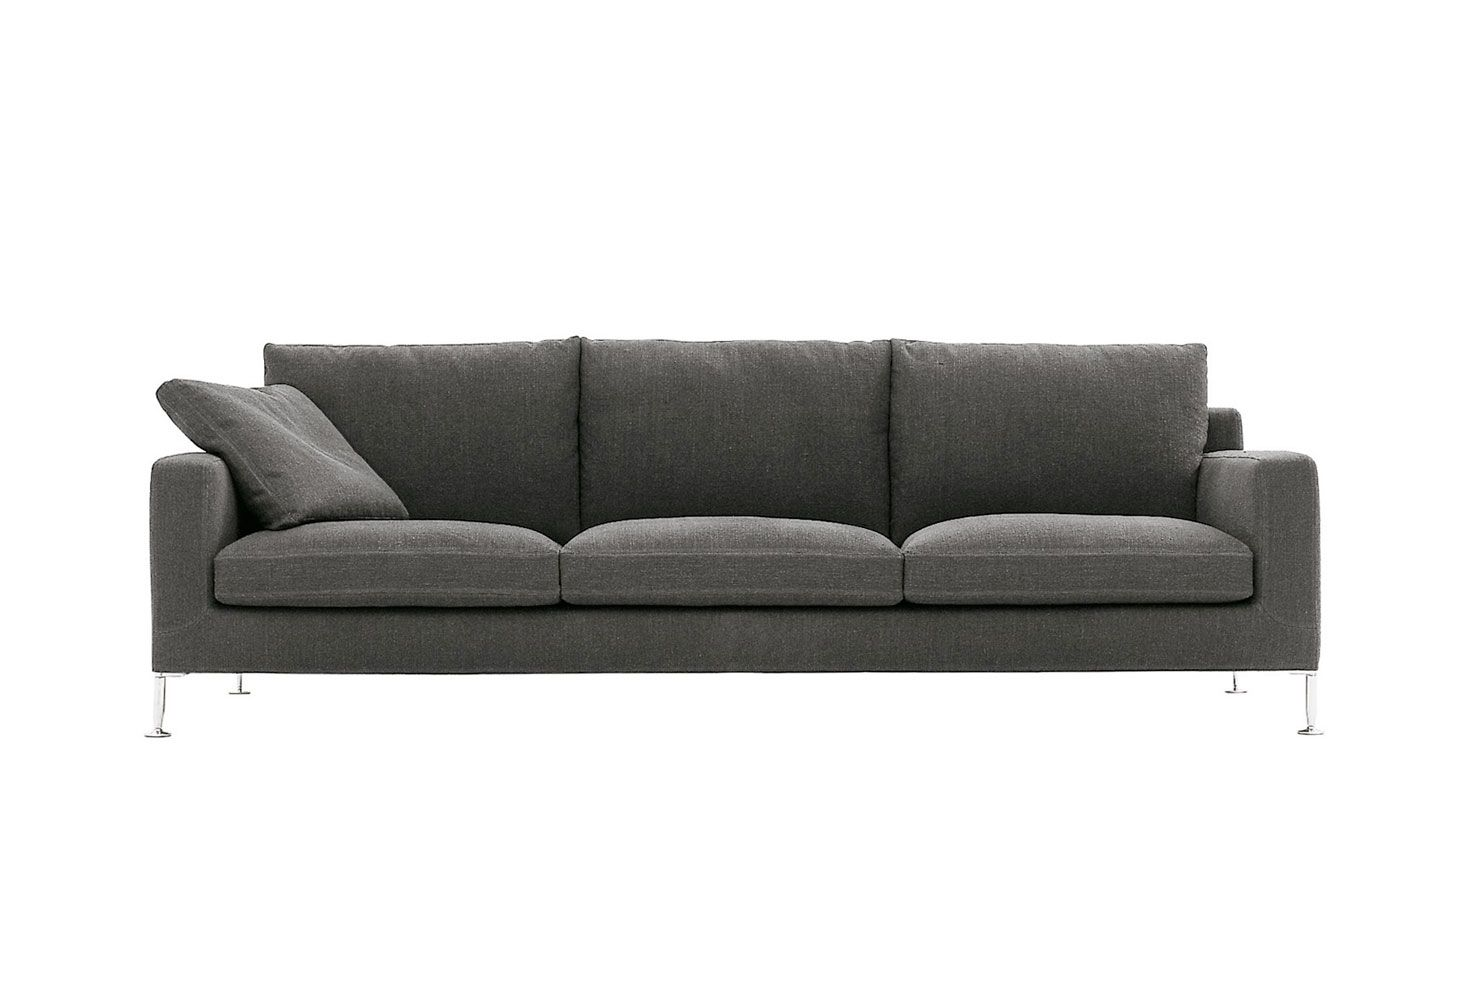 Divano B&b Charles Sofa Harry Collection B B Italia Design Antonio Citterio